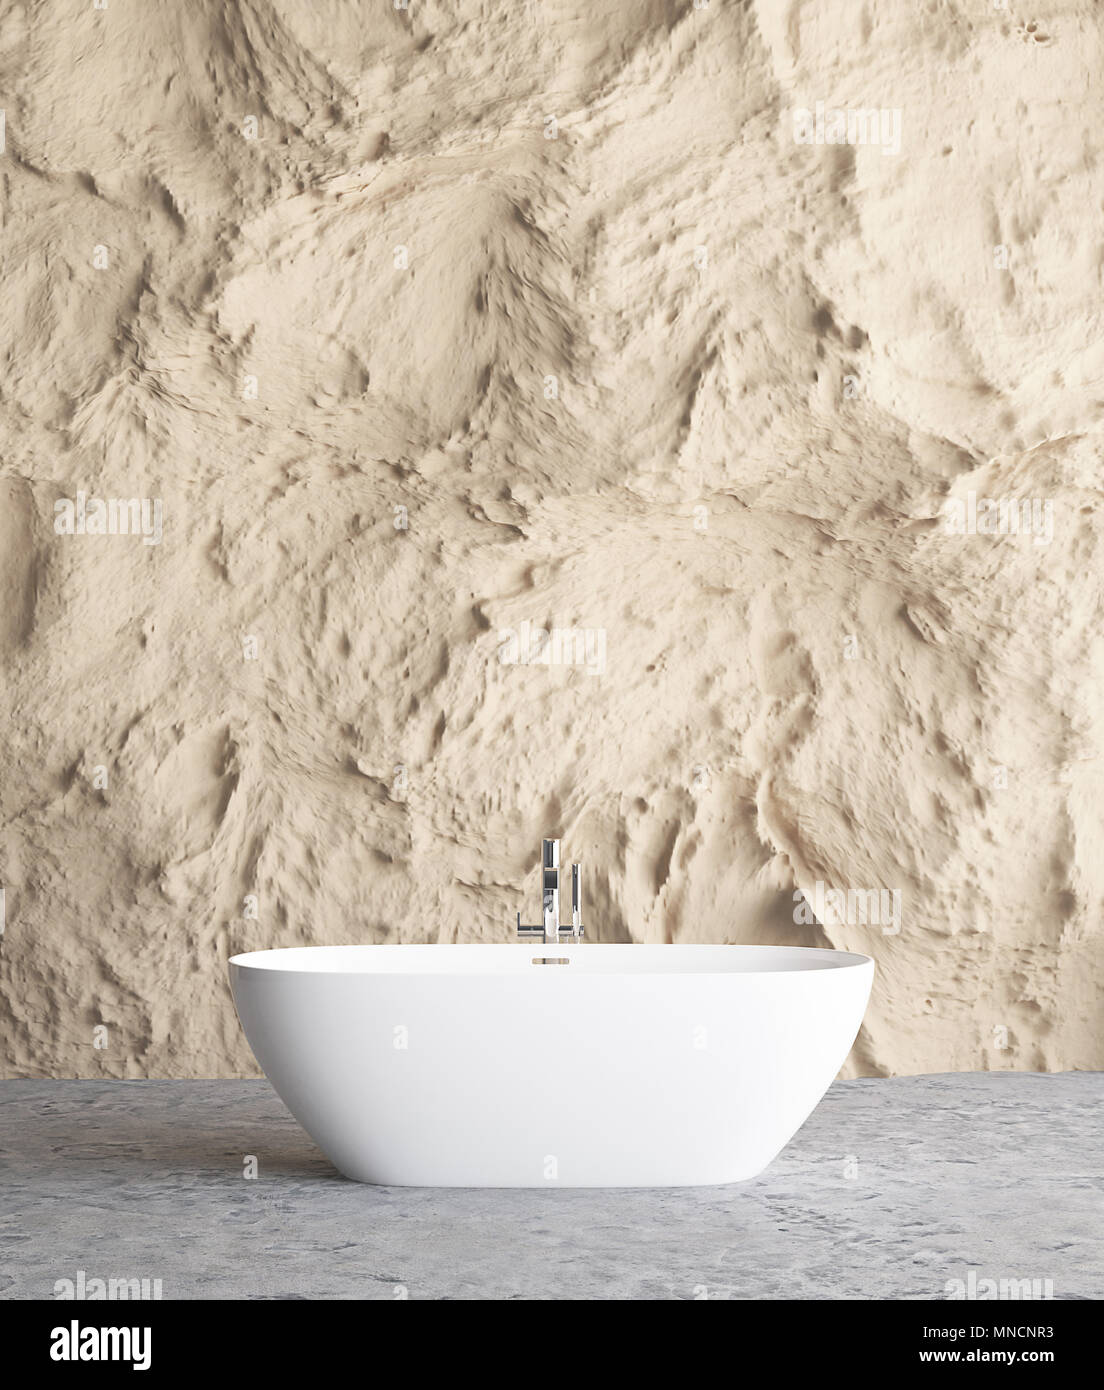 Bathroom Interior With Rock Wall Mock Up Background 3d Render Stock Photo Alamy